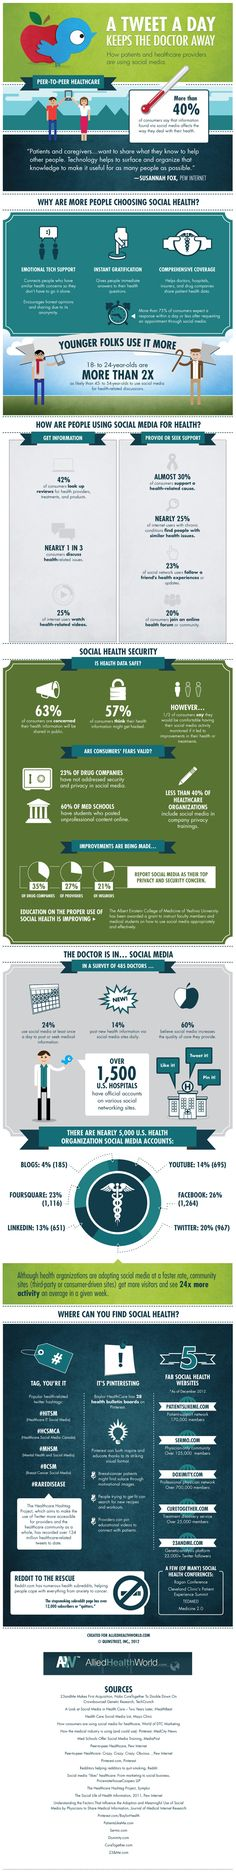 A Tweet a Day Keeps the Doctors Away [Infographic] - Living Green Magazine